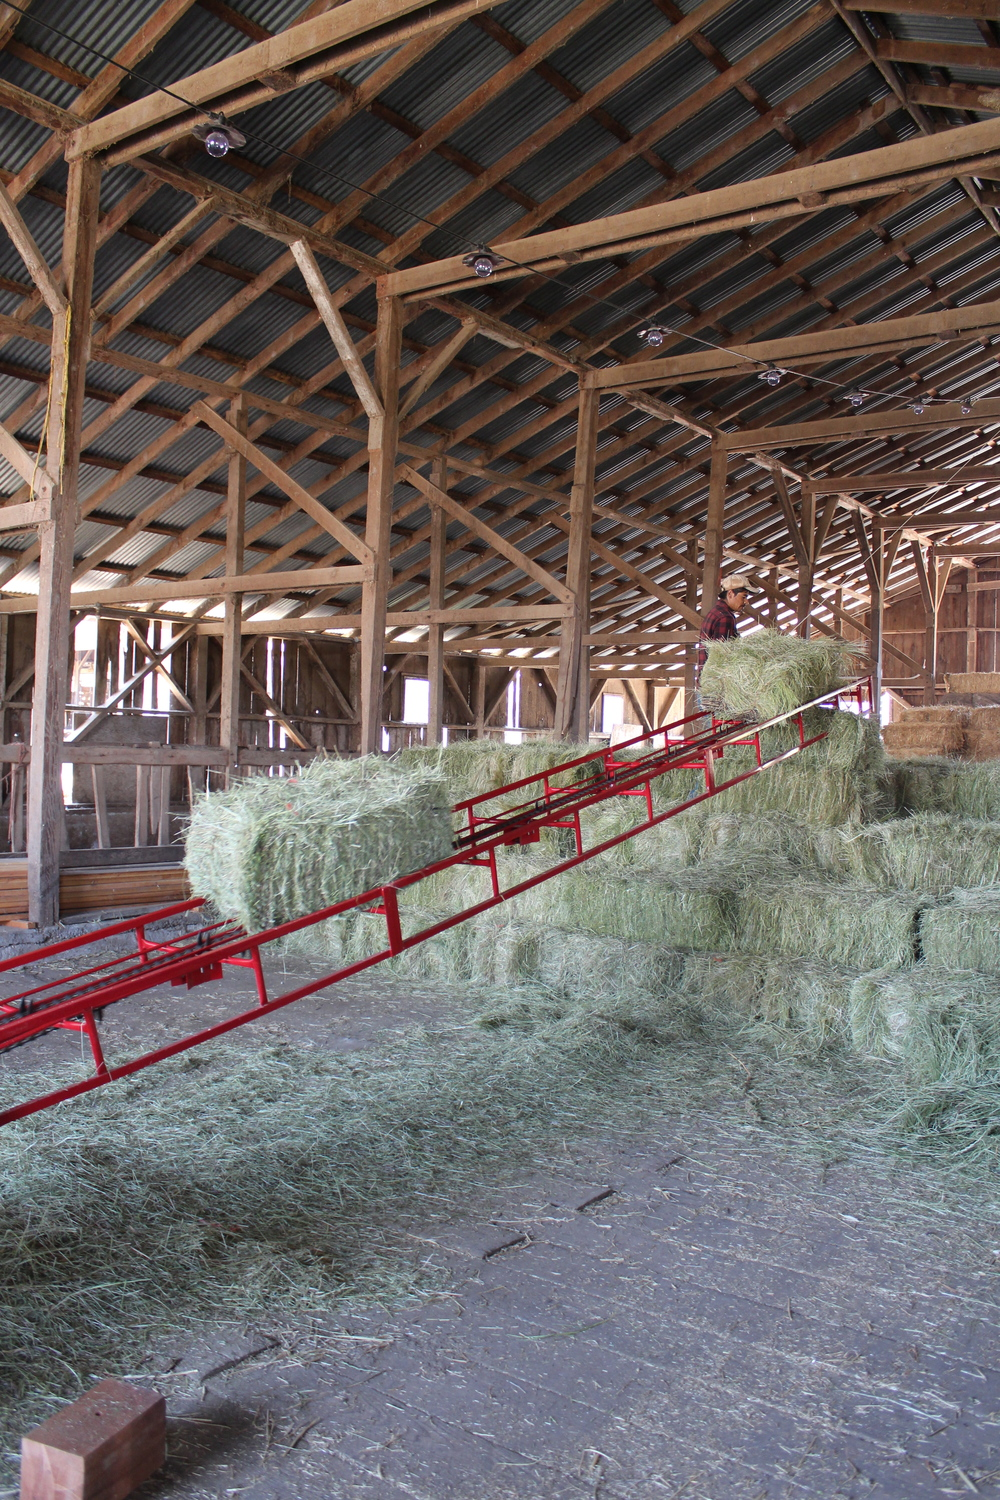 Loading hay into the barn.